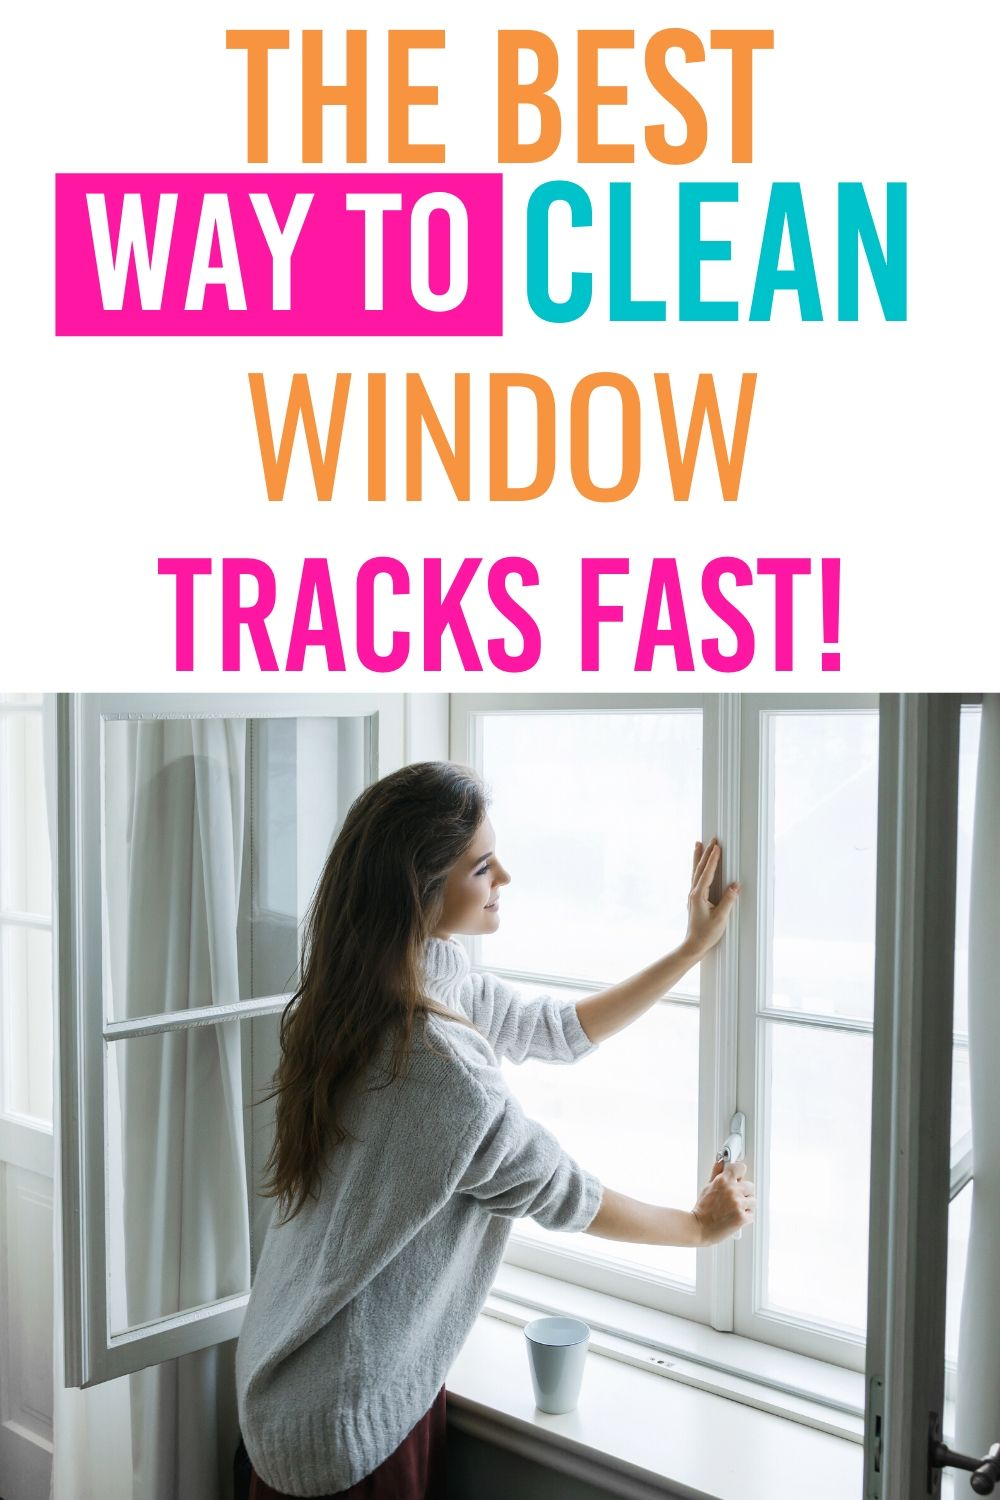 Learn how to clean window tracks fast and the right way. Get rid of any dust, dirt, and debris lingering for a fresh and clean window track. #windows #cleaning #guide #howto #best #easy #windows #home #fresh via @homebyjenn